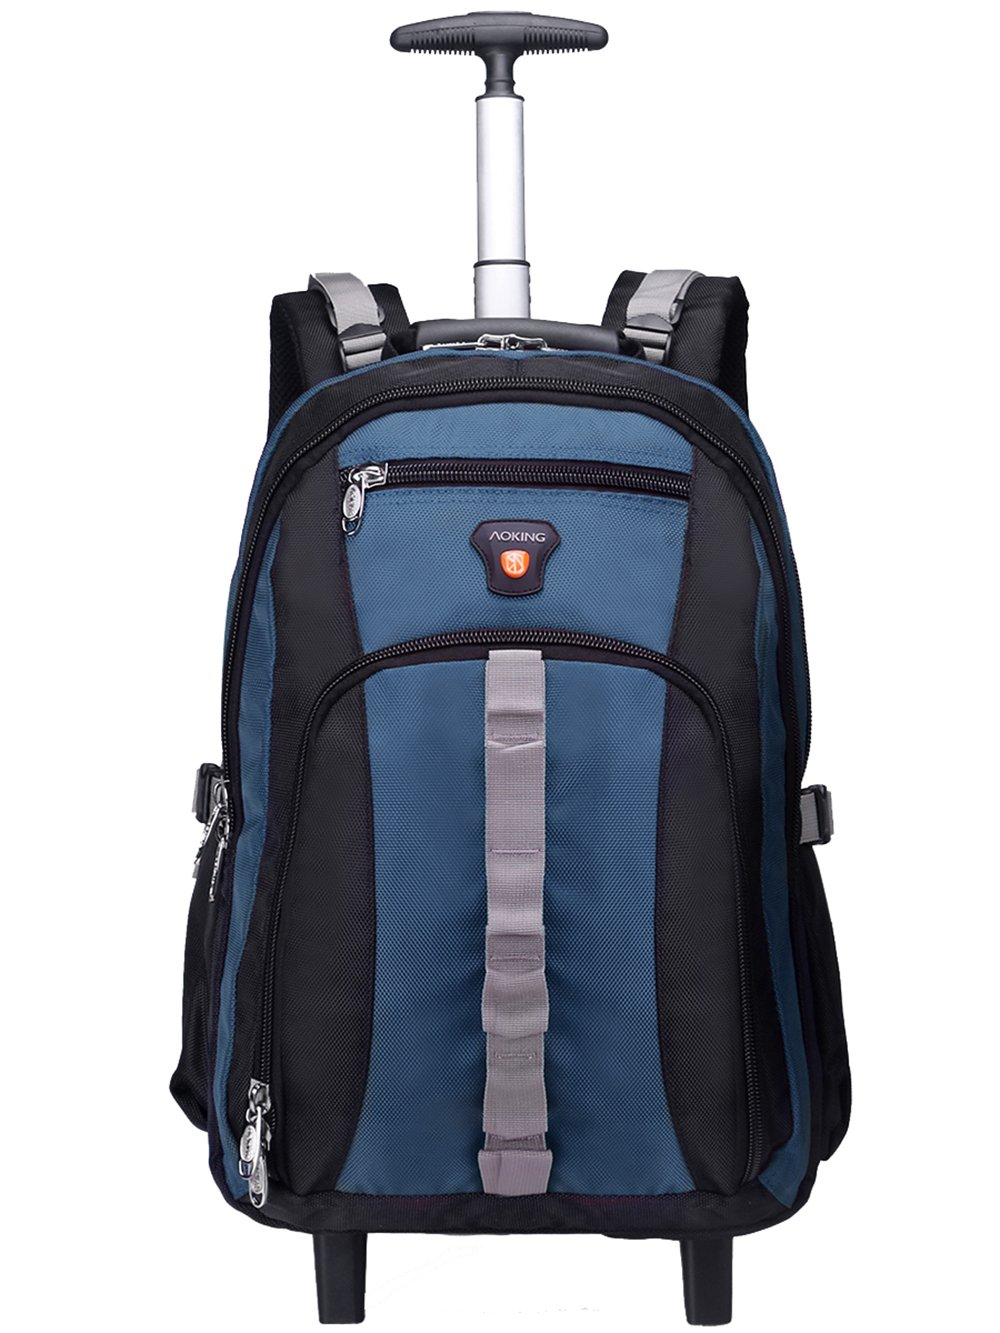 AOKING 20/22 Inch Water Resistant Travel School Business Rolling Wheeled Backpack with Laptop Compartment Lake Blue 20''